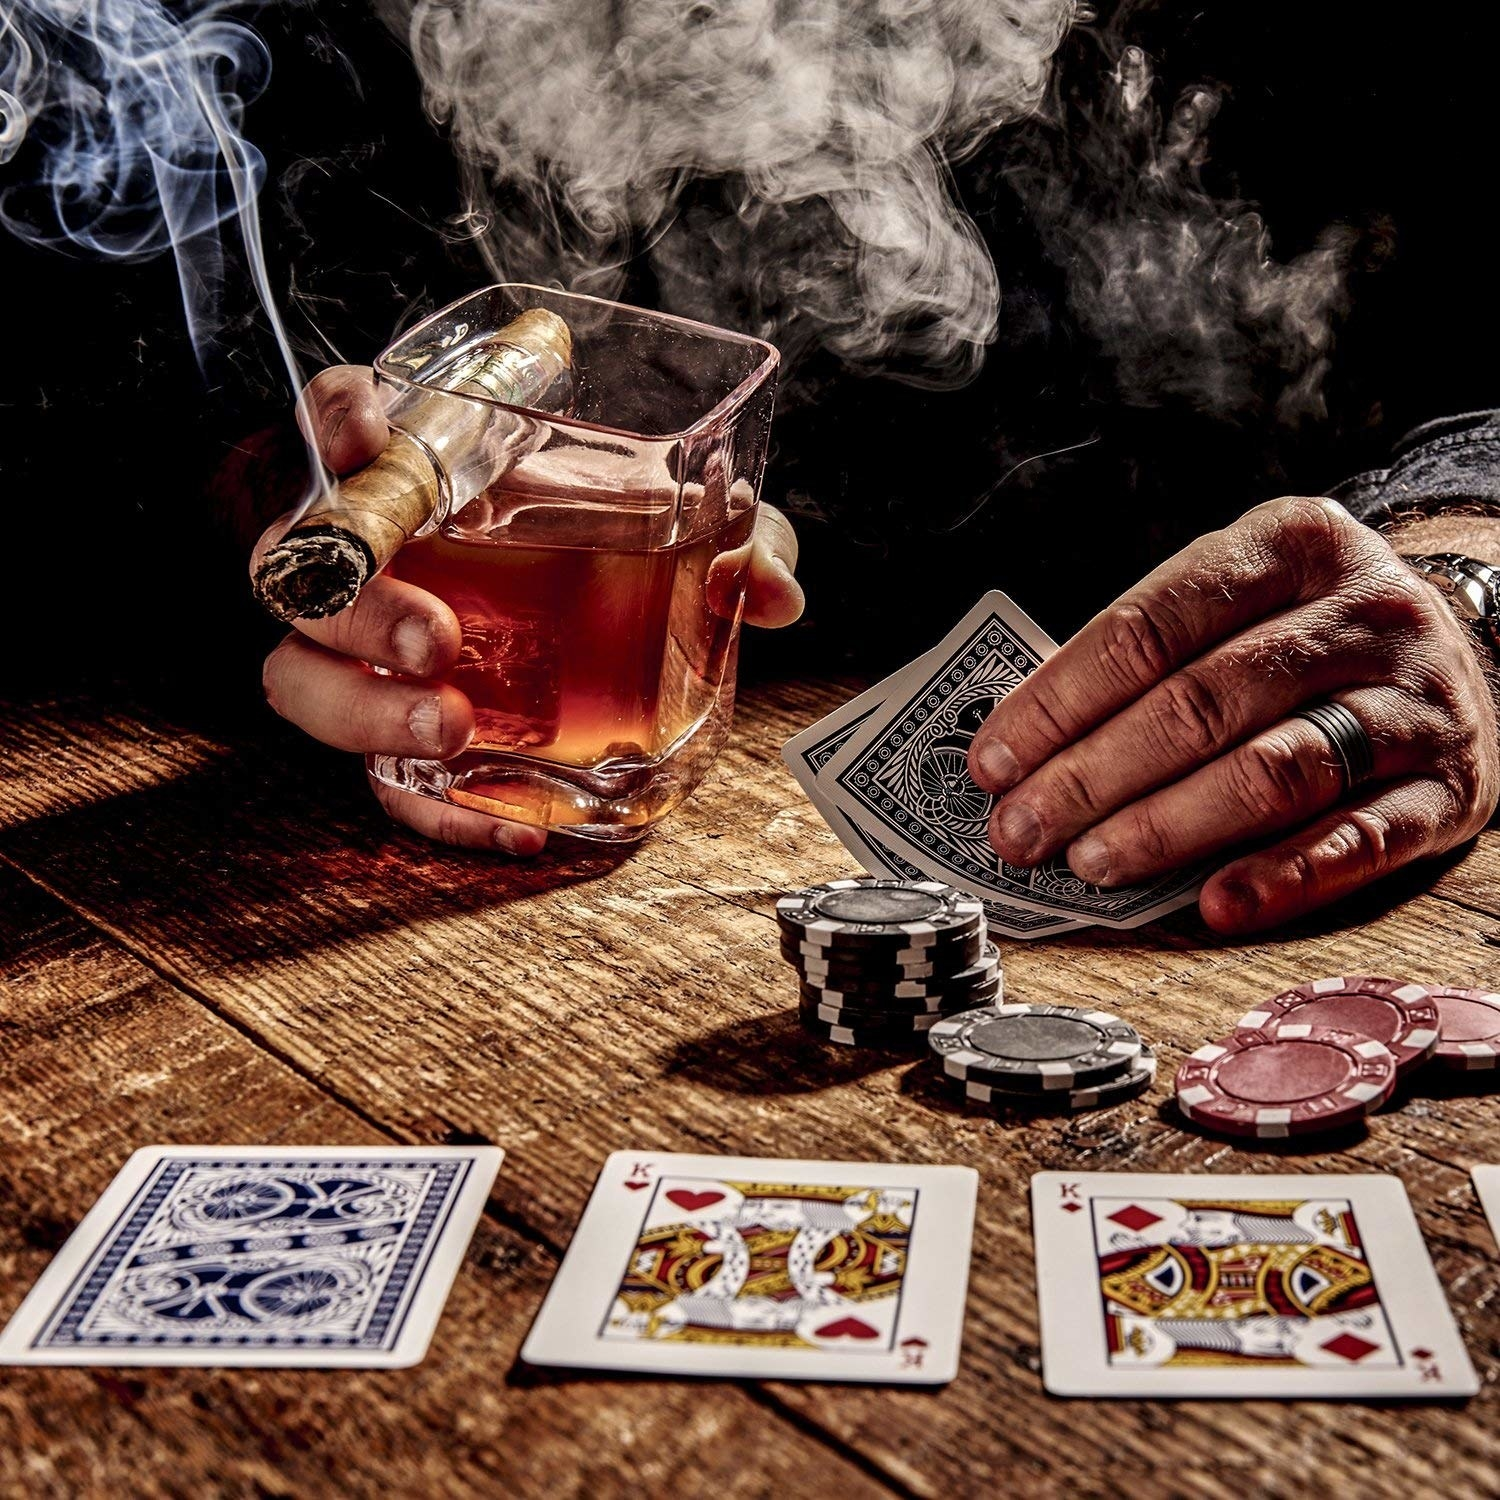 man playing cards with scotch glass and cigar in his left hand